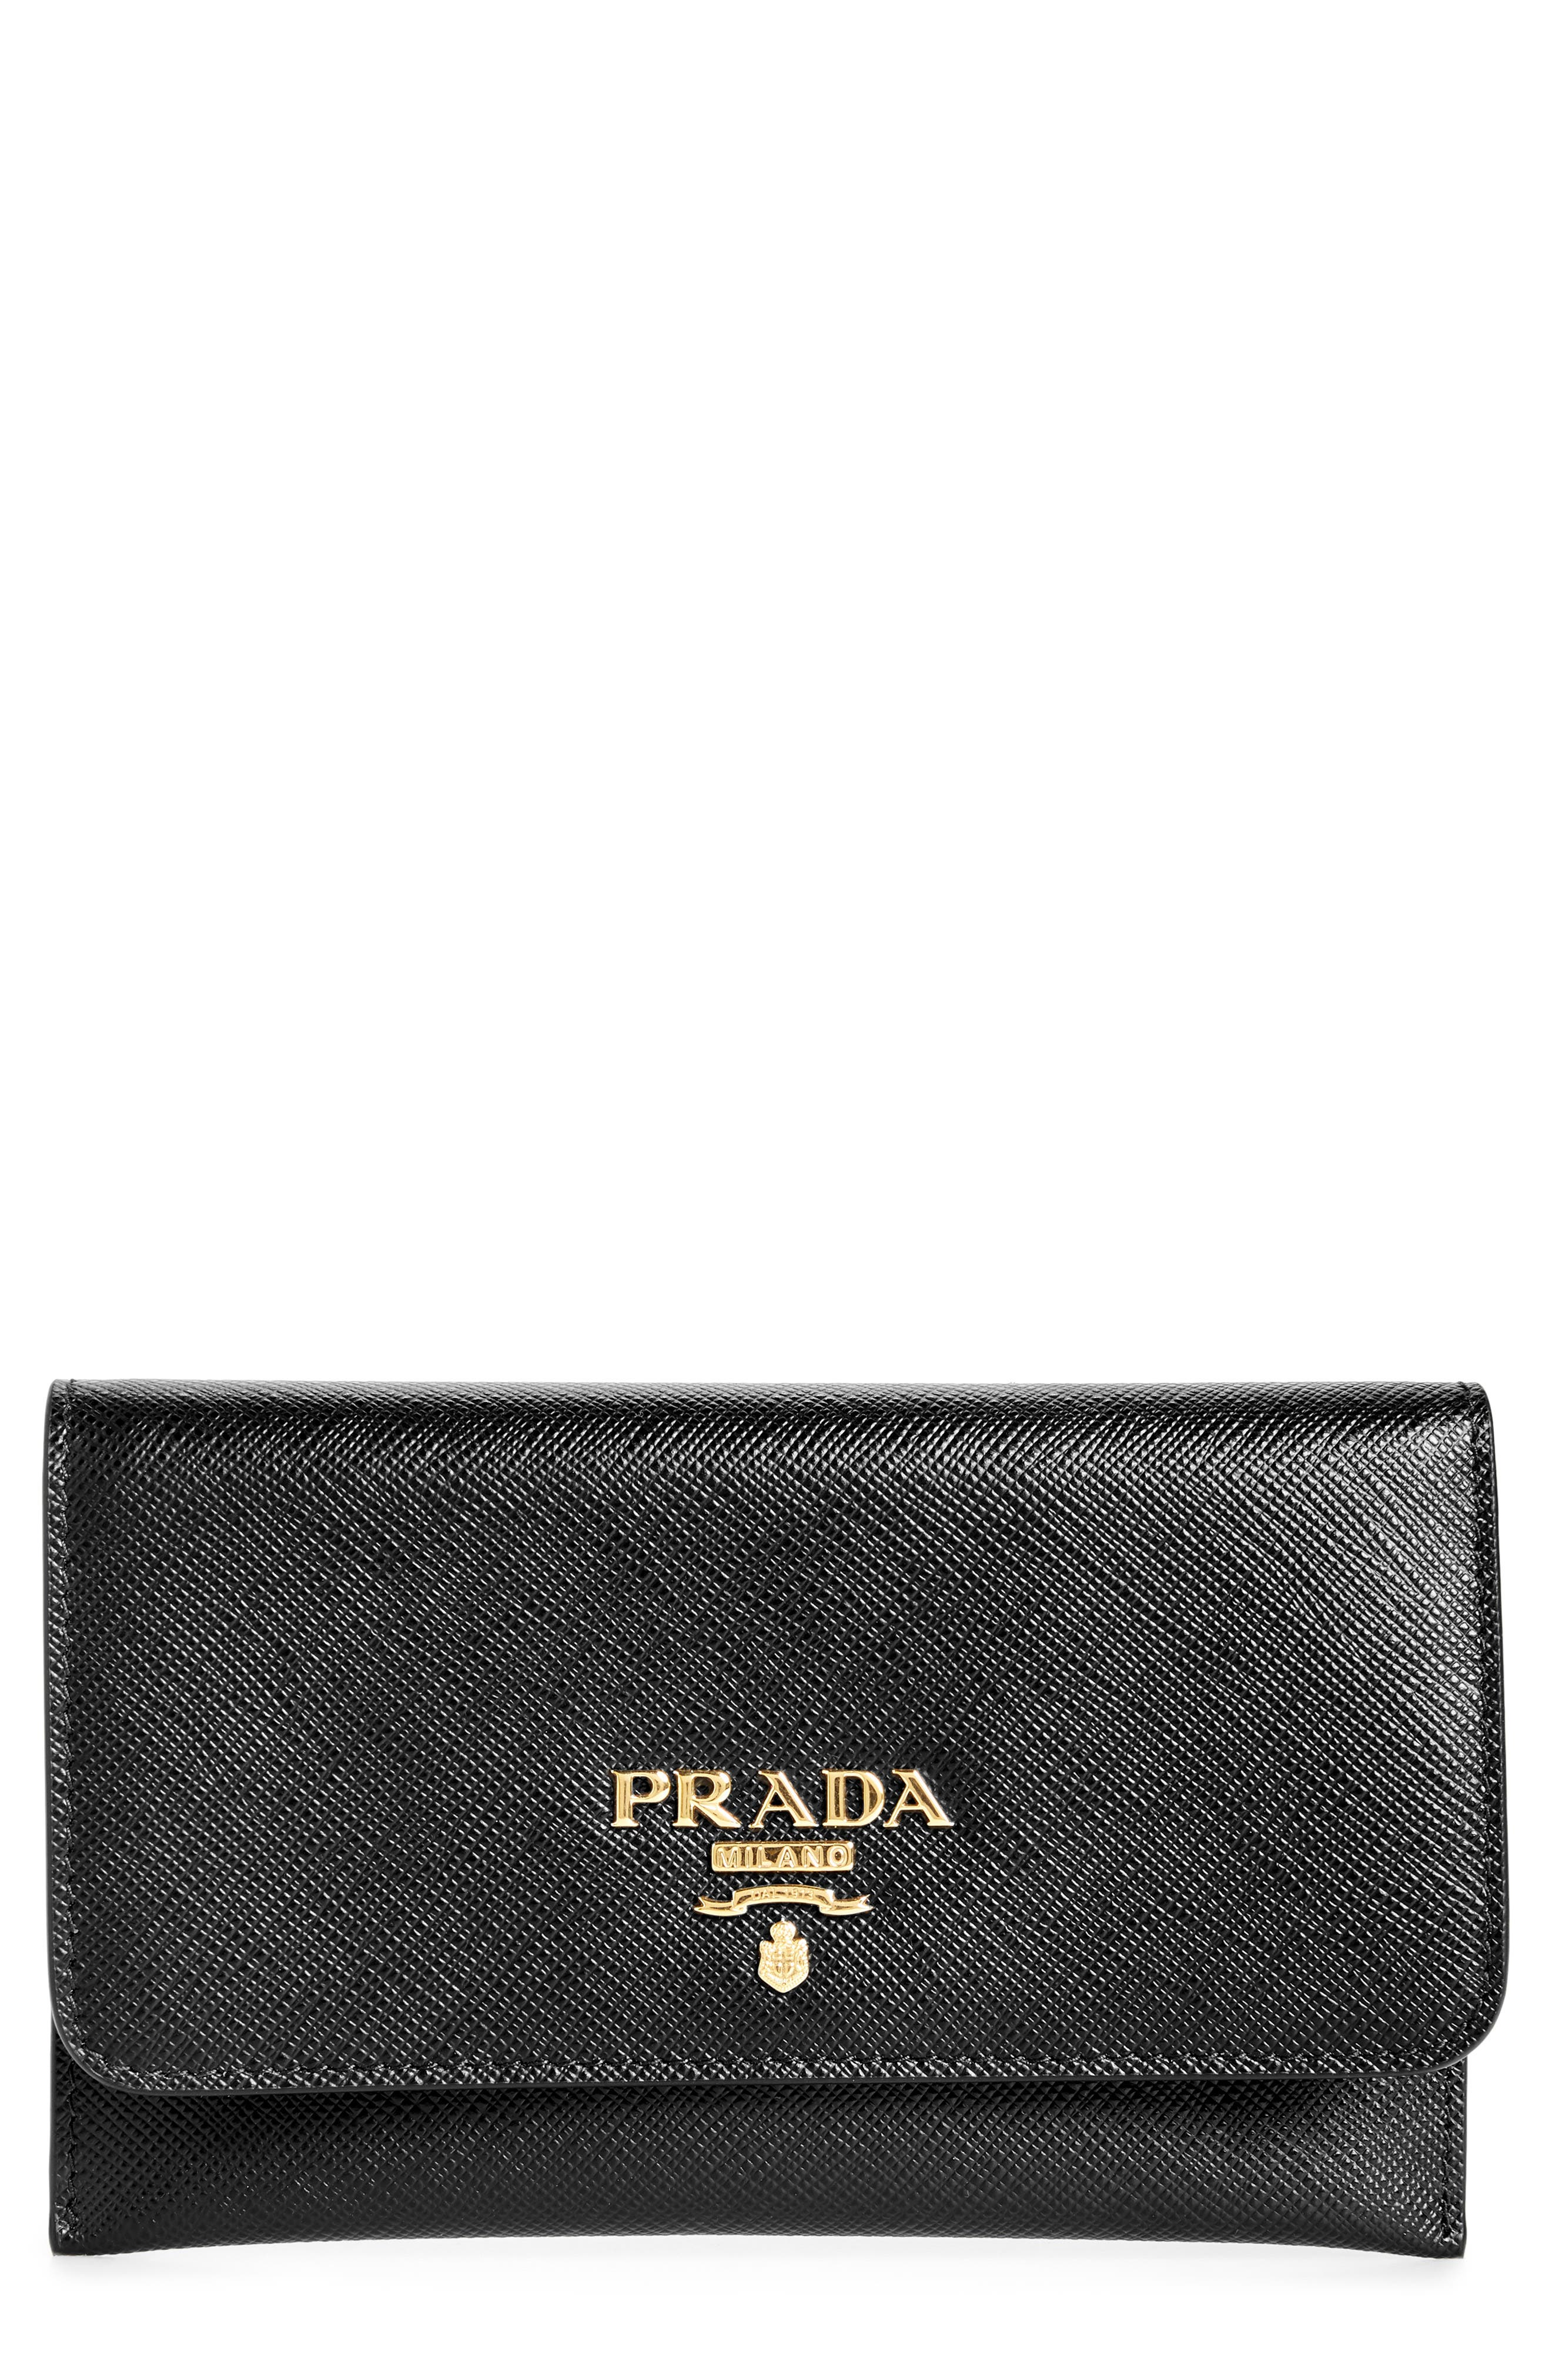 a5c56f4c351d4e ... closeout prada saffiano leather envelope card case 7a052 709cd